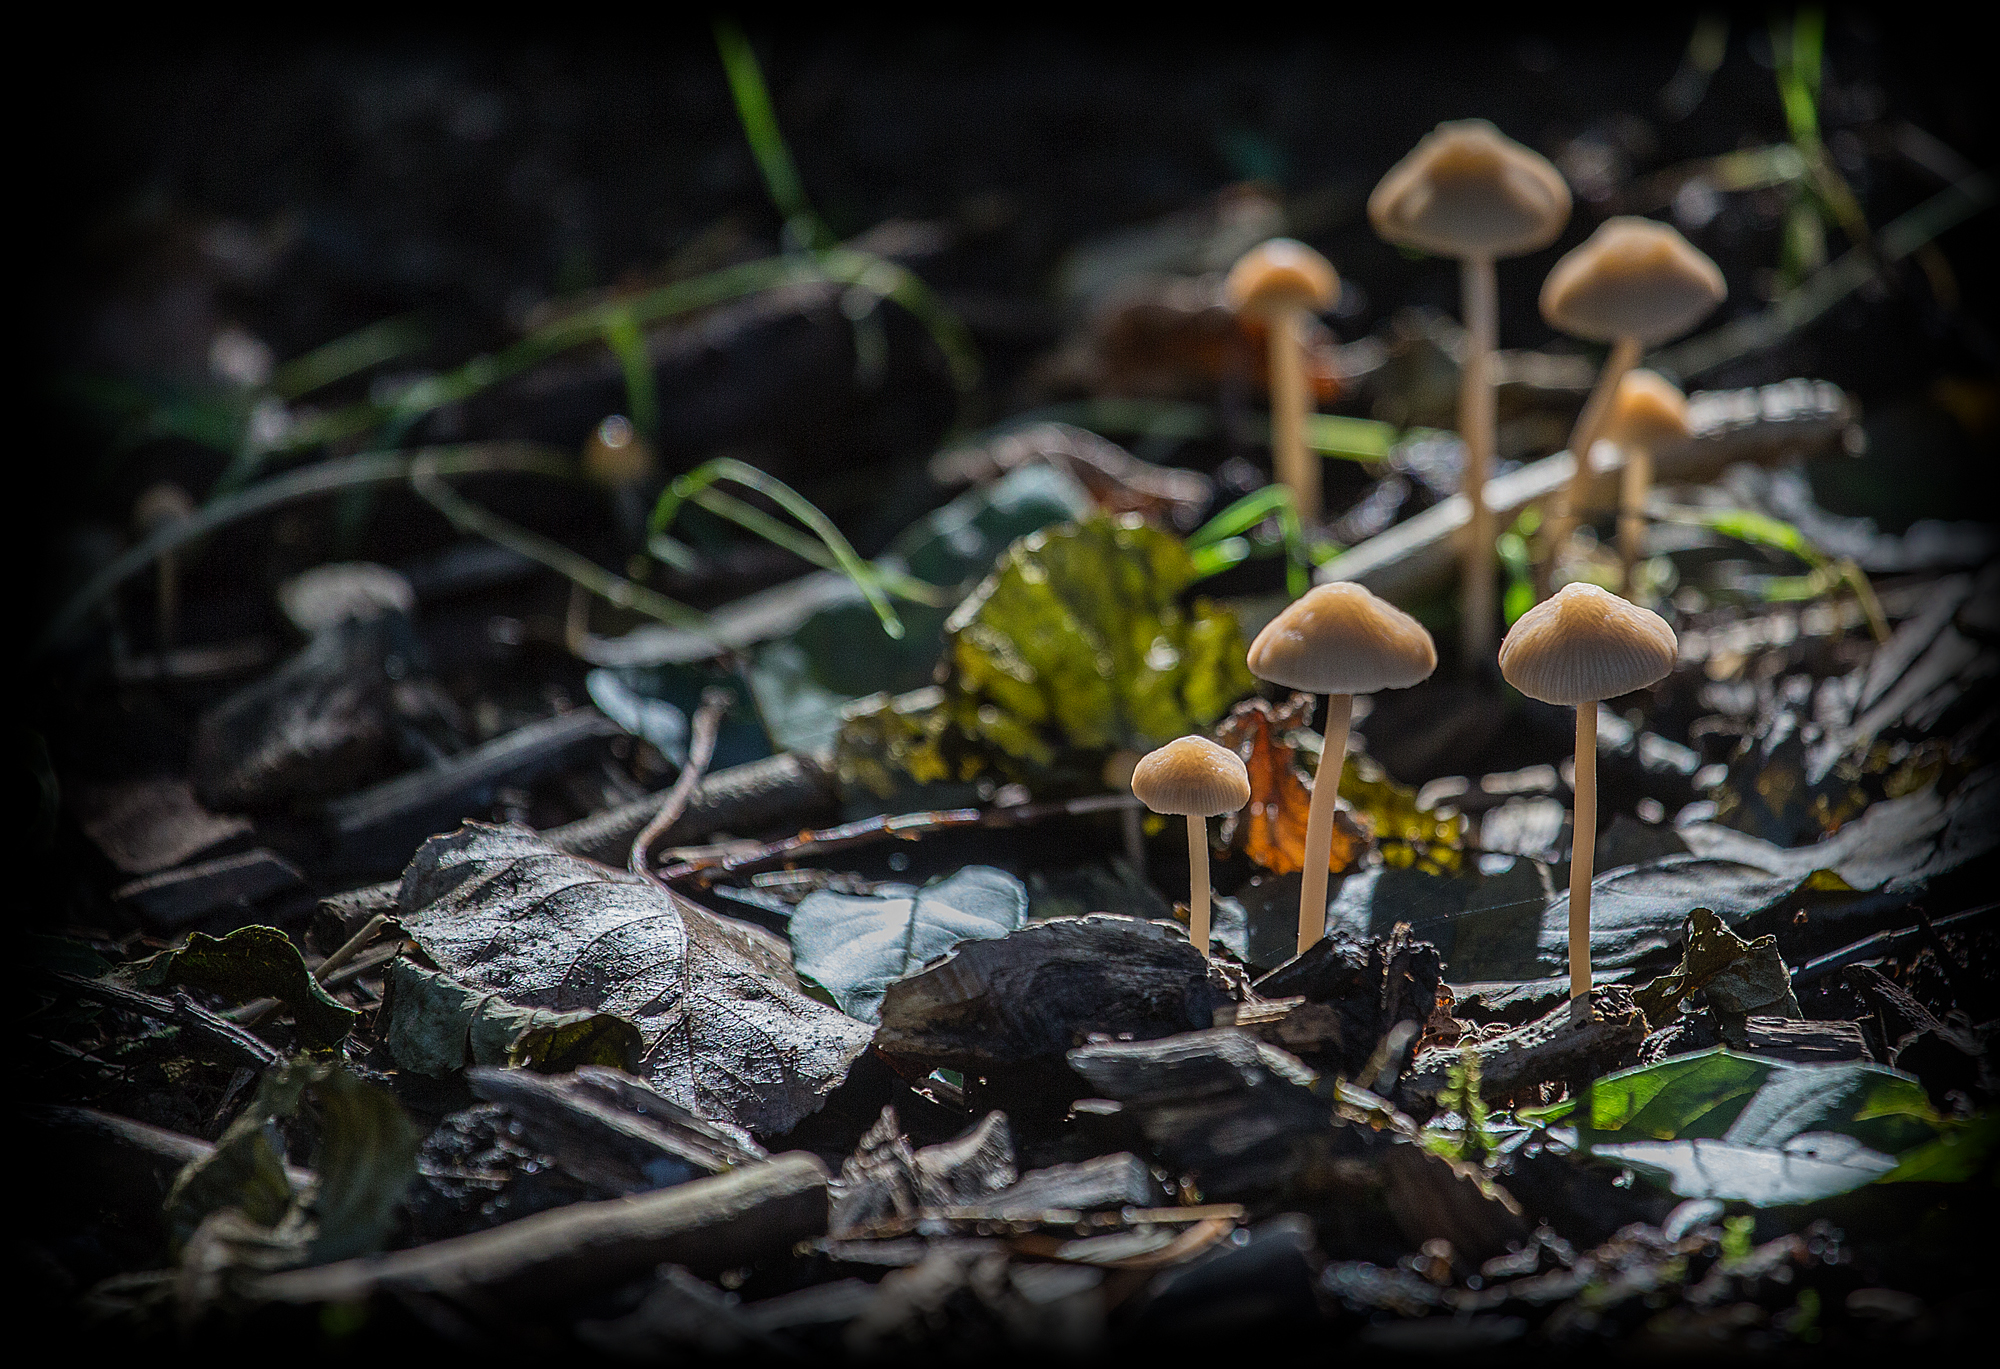 The Toadstools